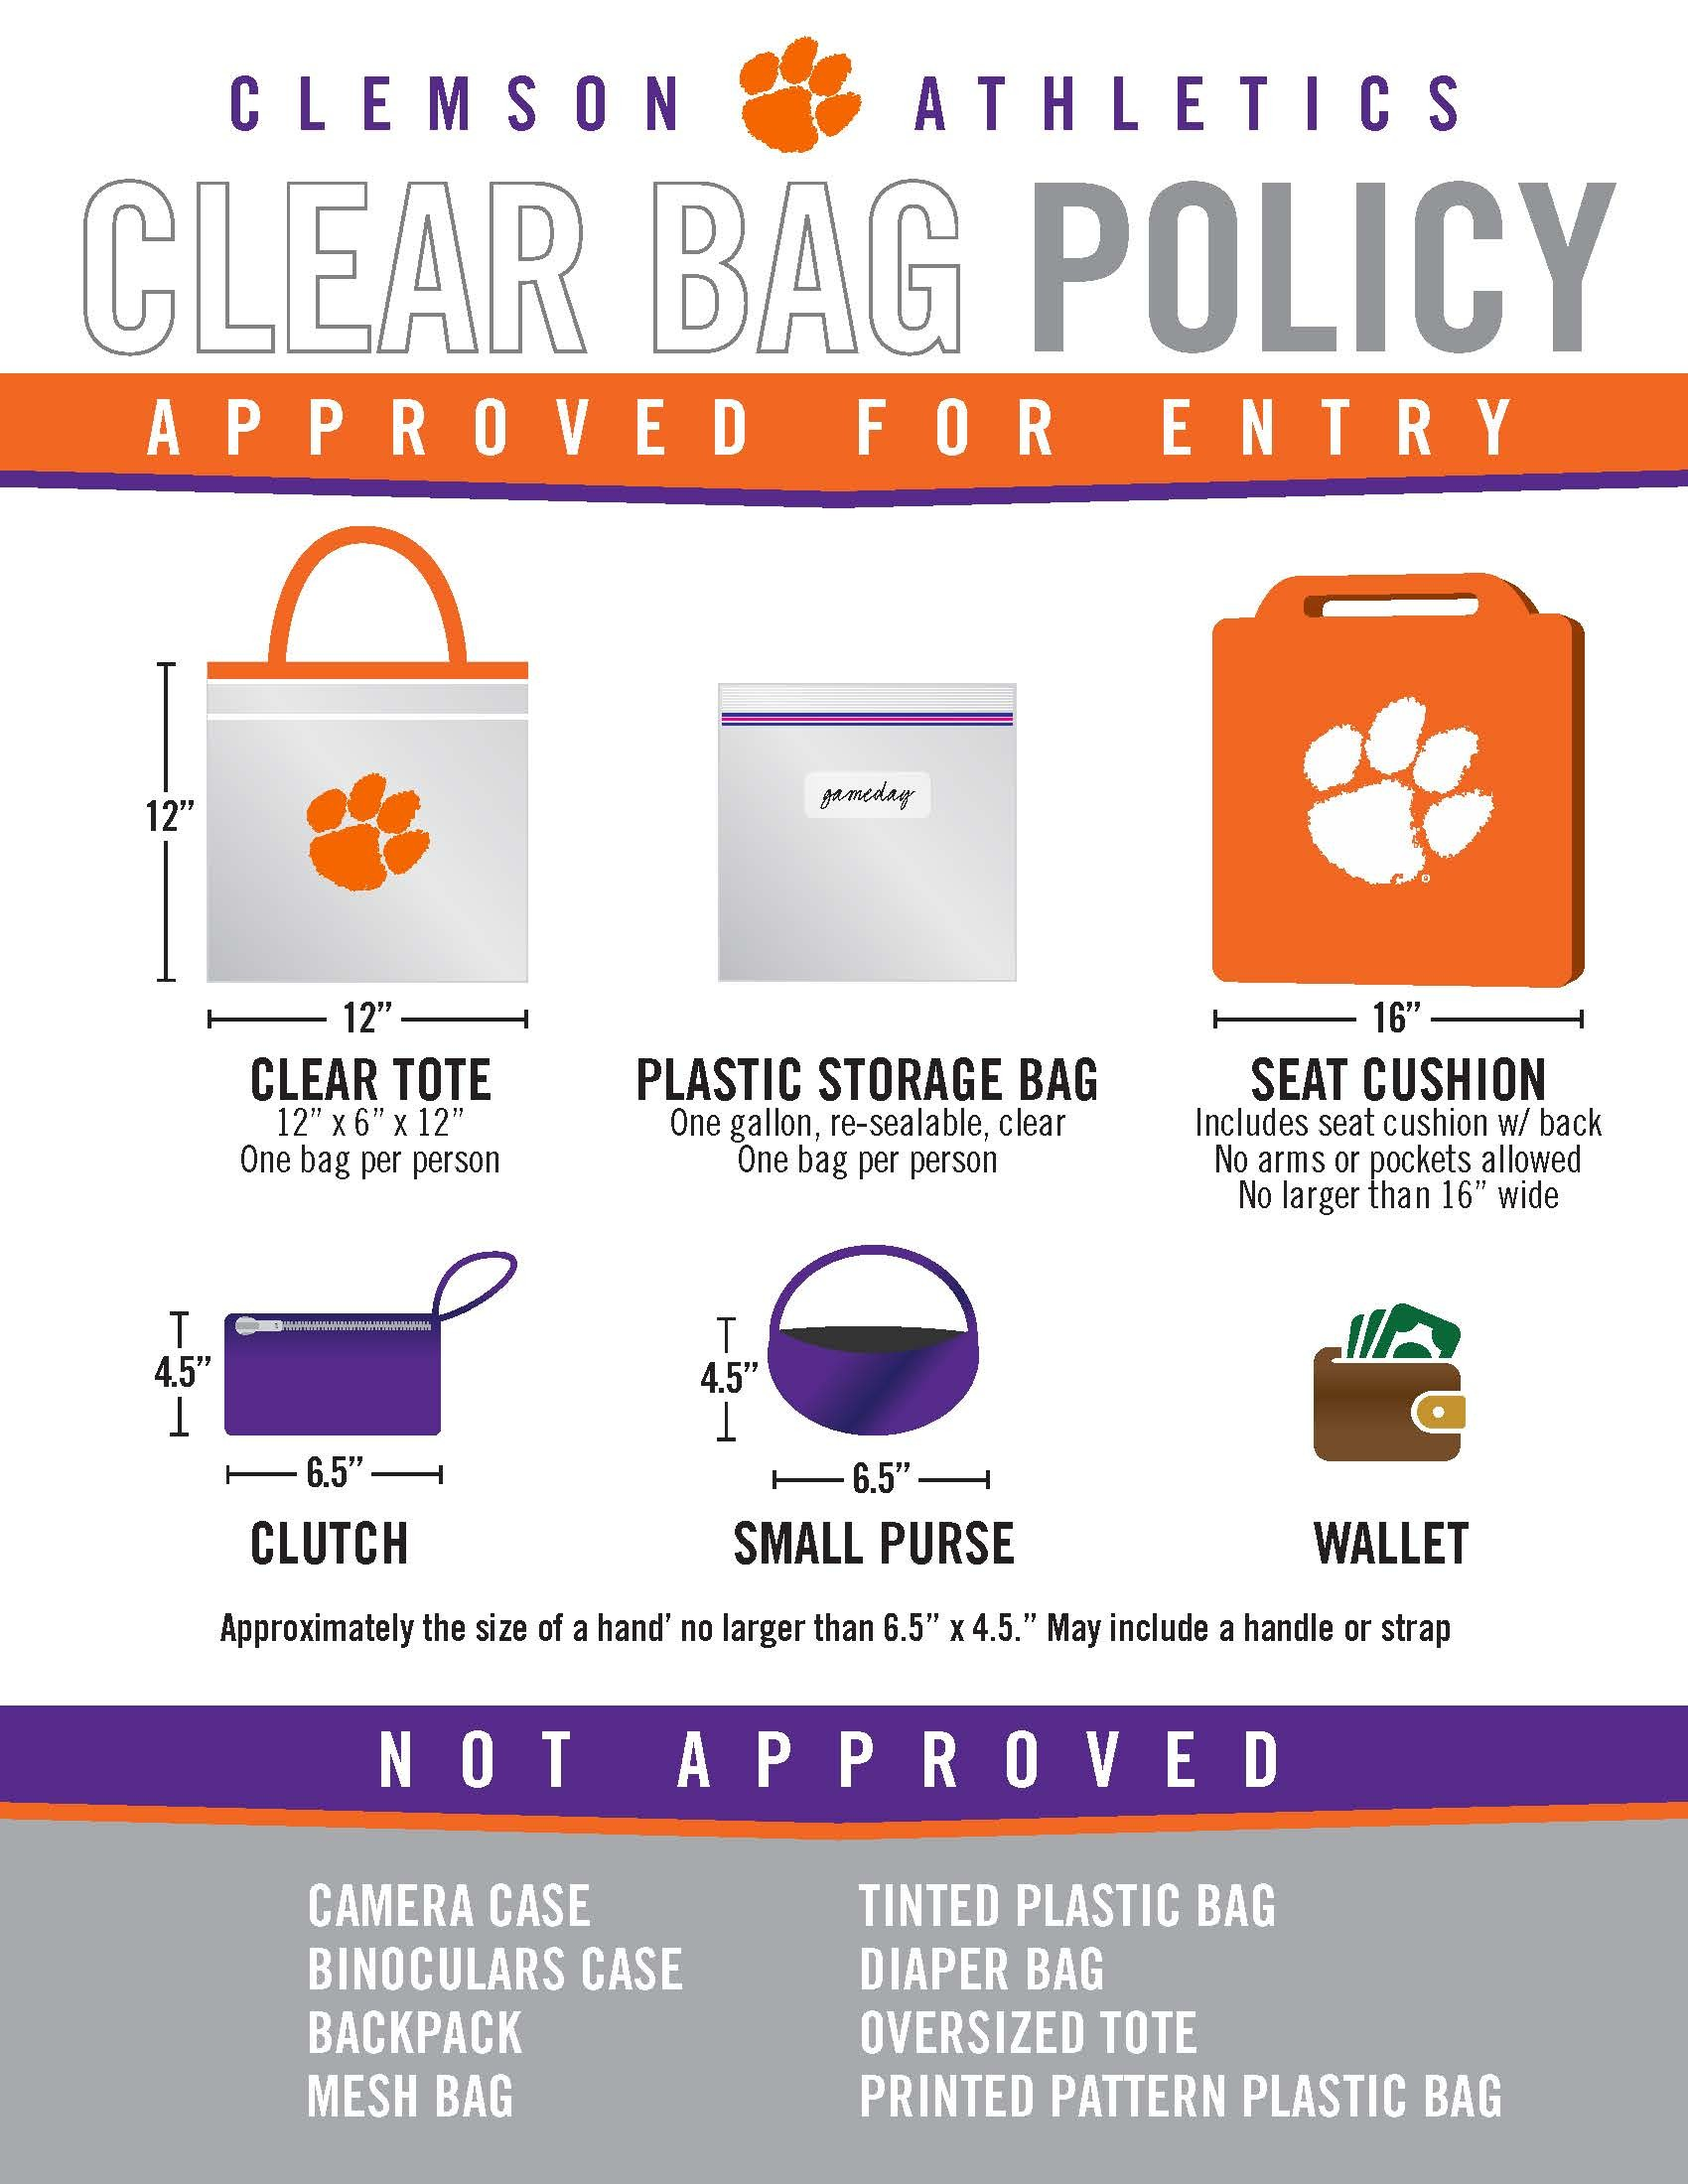 CLEMSON CLEAR BAG POLICY AT MEMORIAL STADIUM